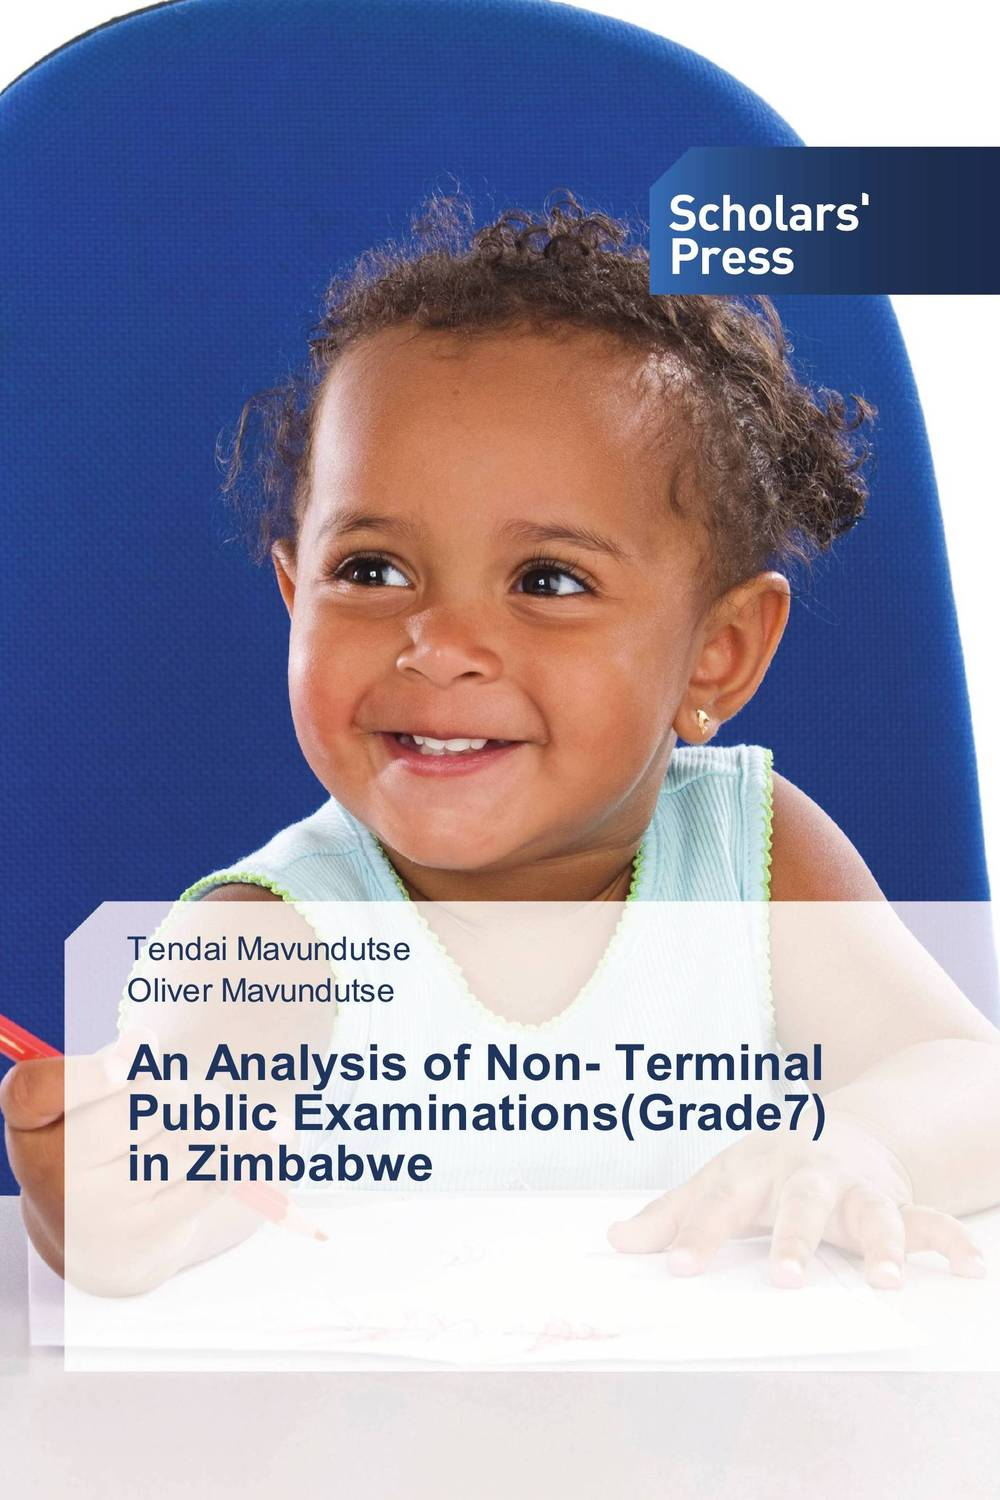 An Analysis of Non- Terminal Public Examinations(Grade7) in Zimbabwe